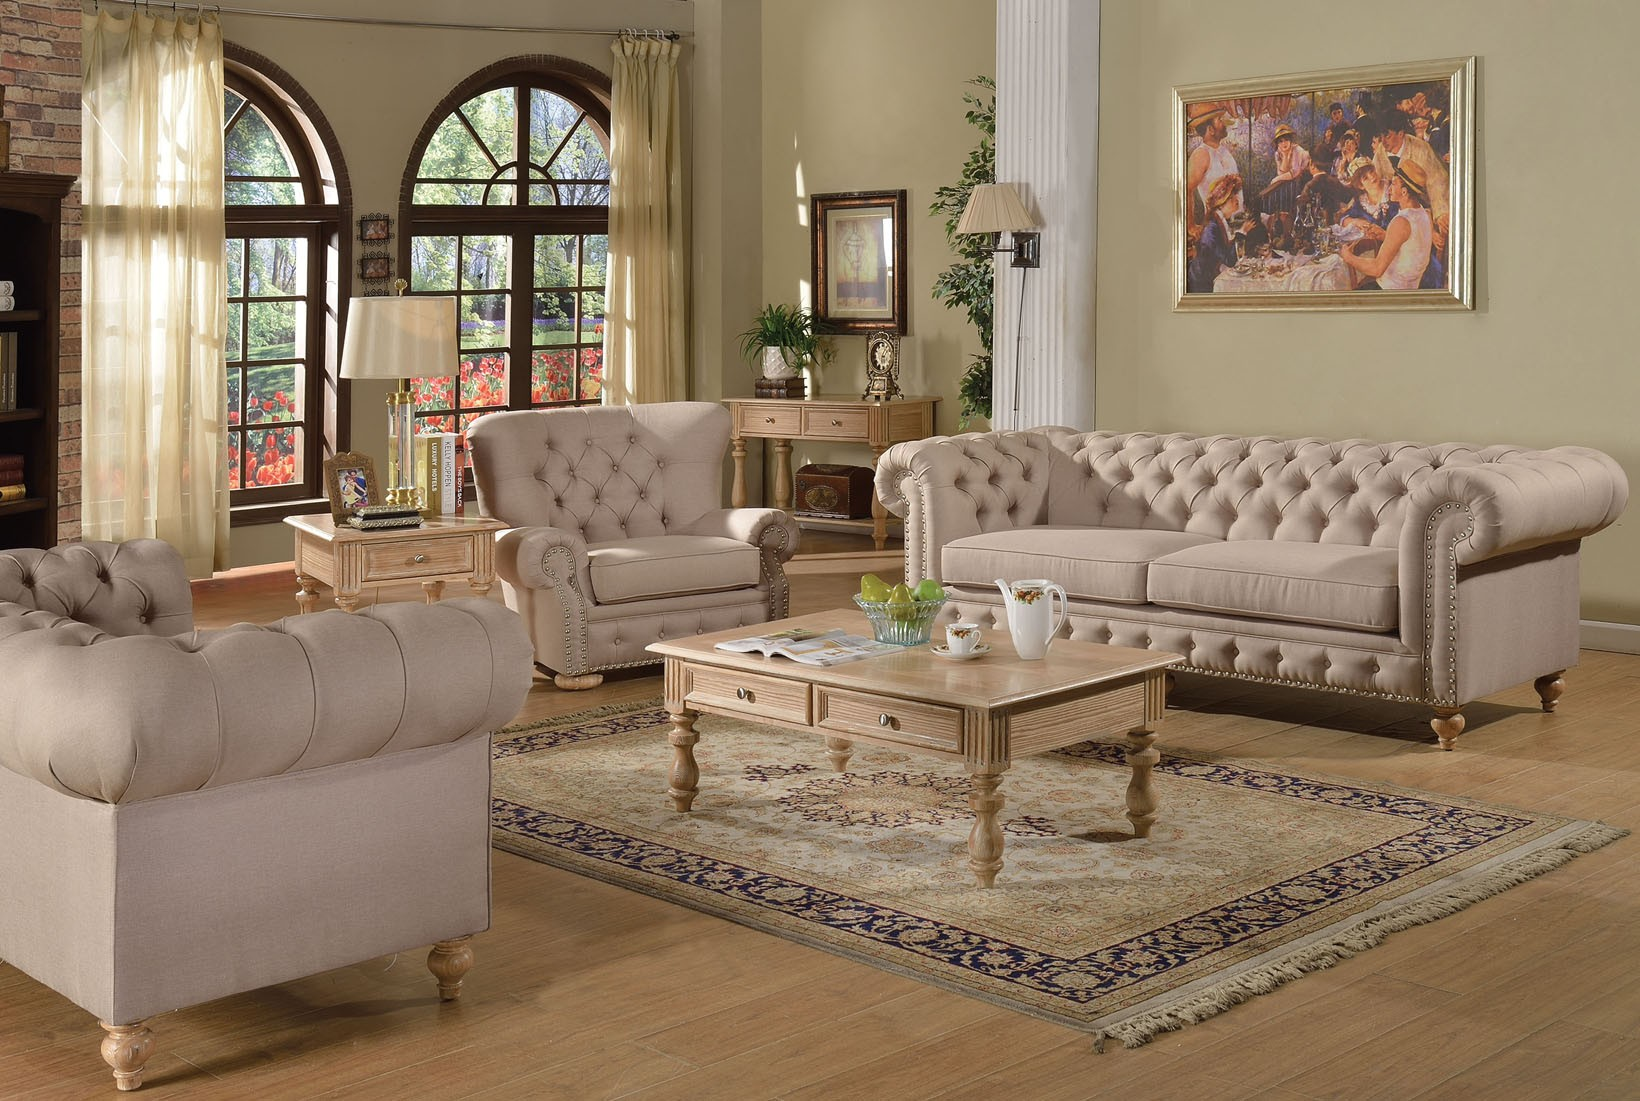 Furniture For Living Rooms: 2pc Sofa Set Beige Fabric Traditional Living Room